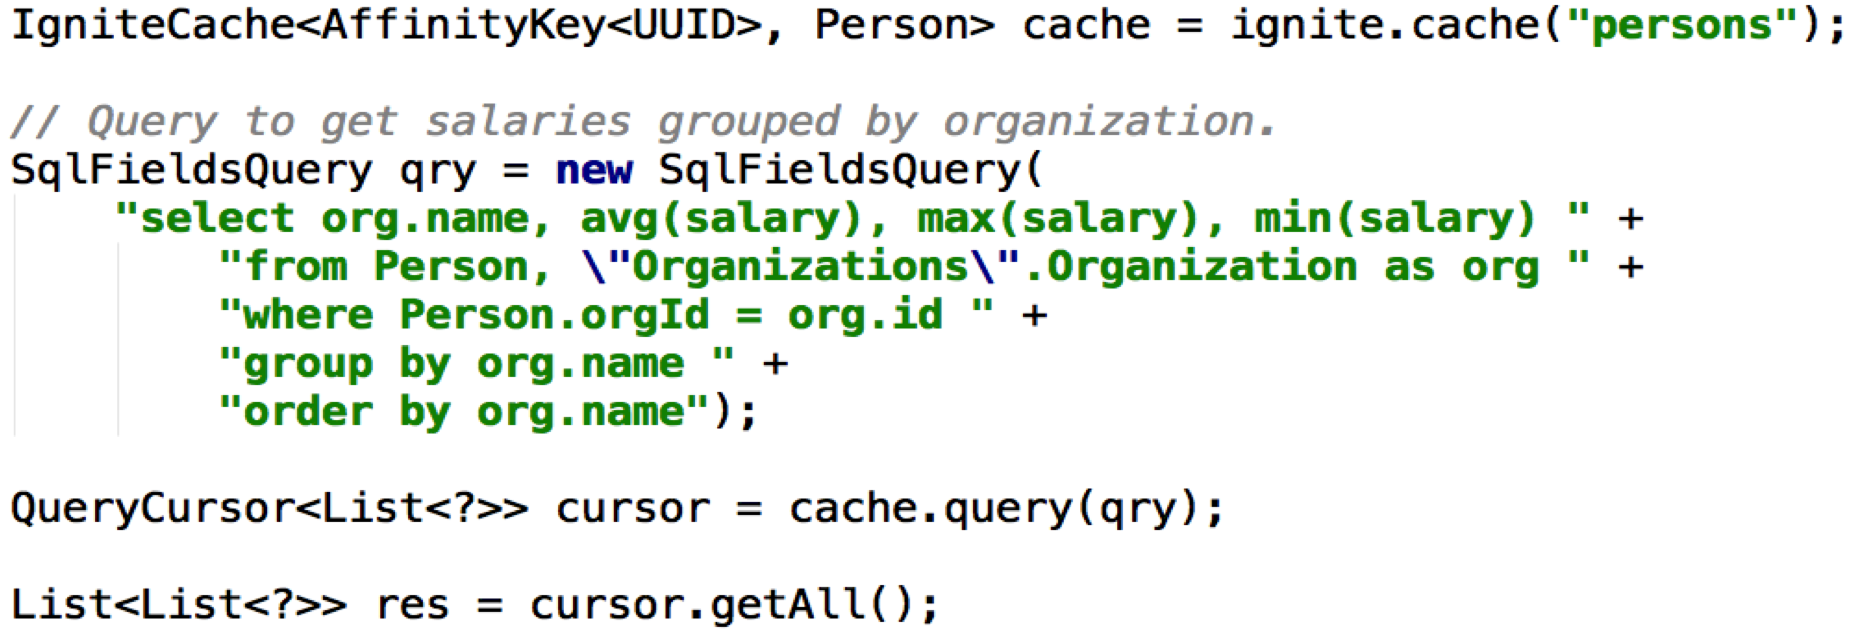 Figure 2. SQL Join using Java